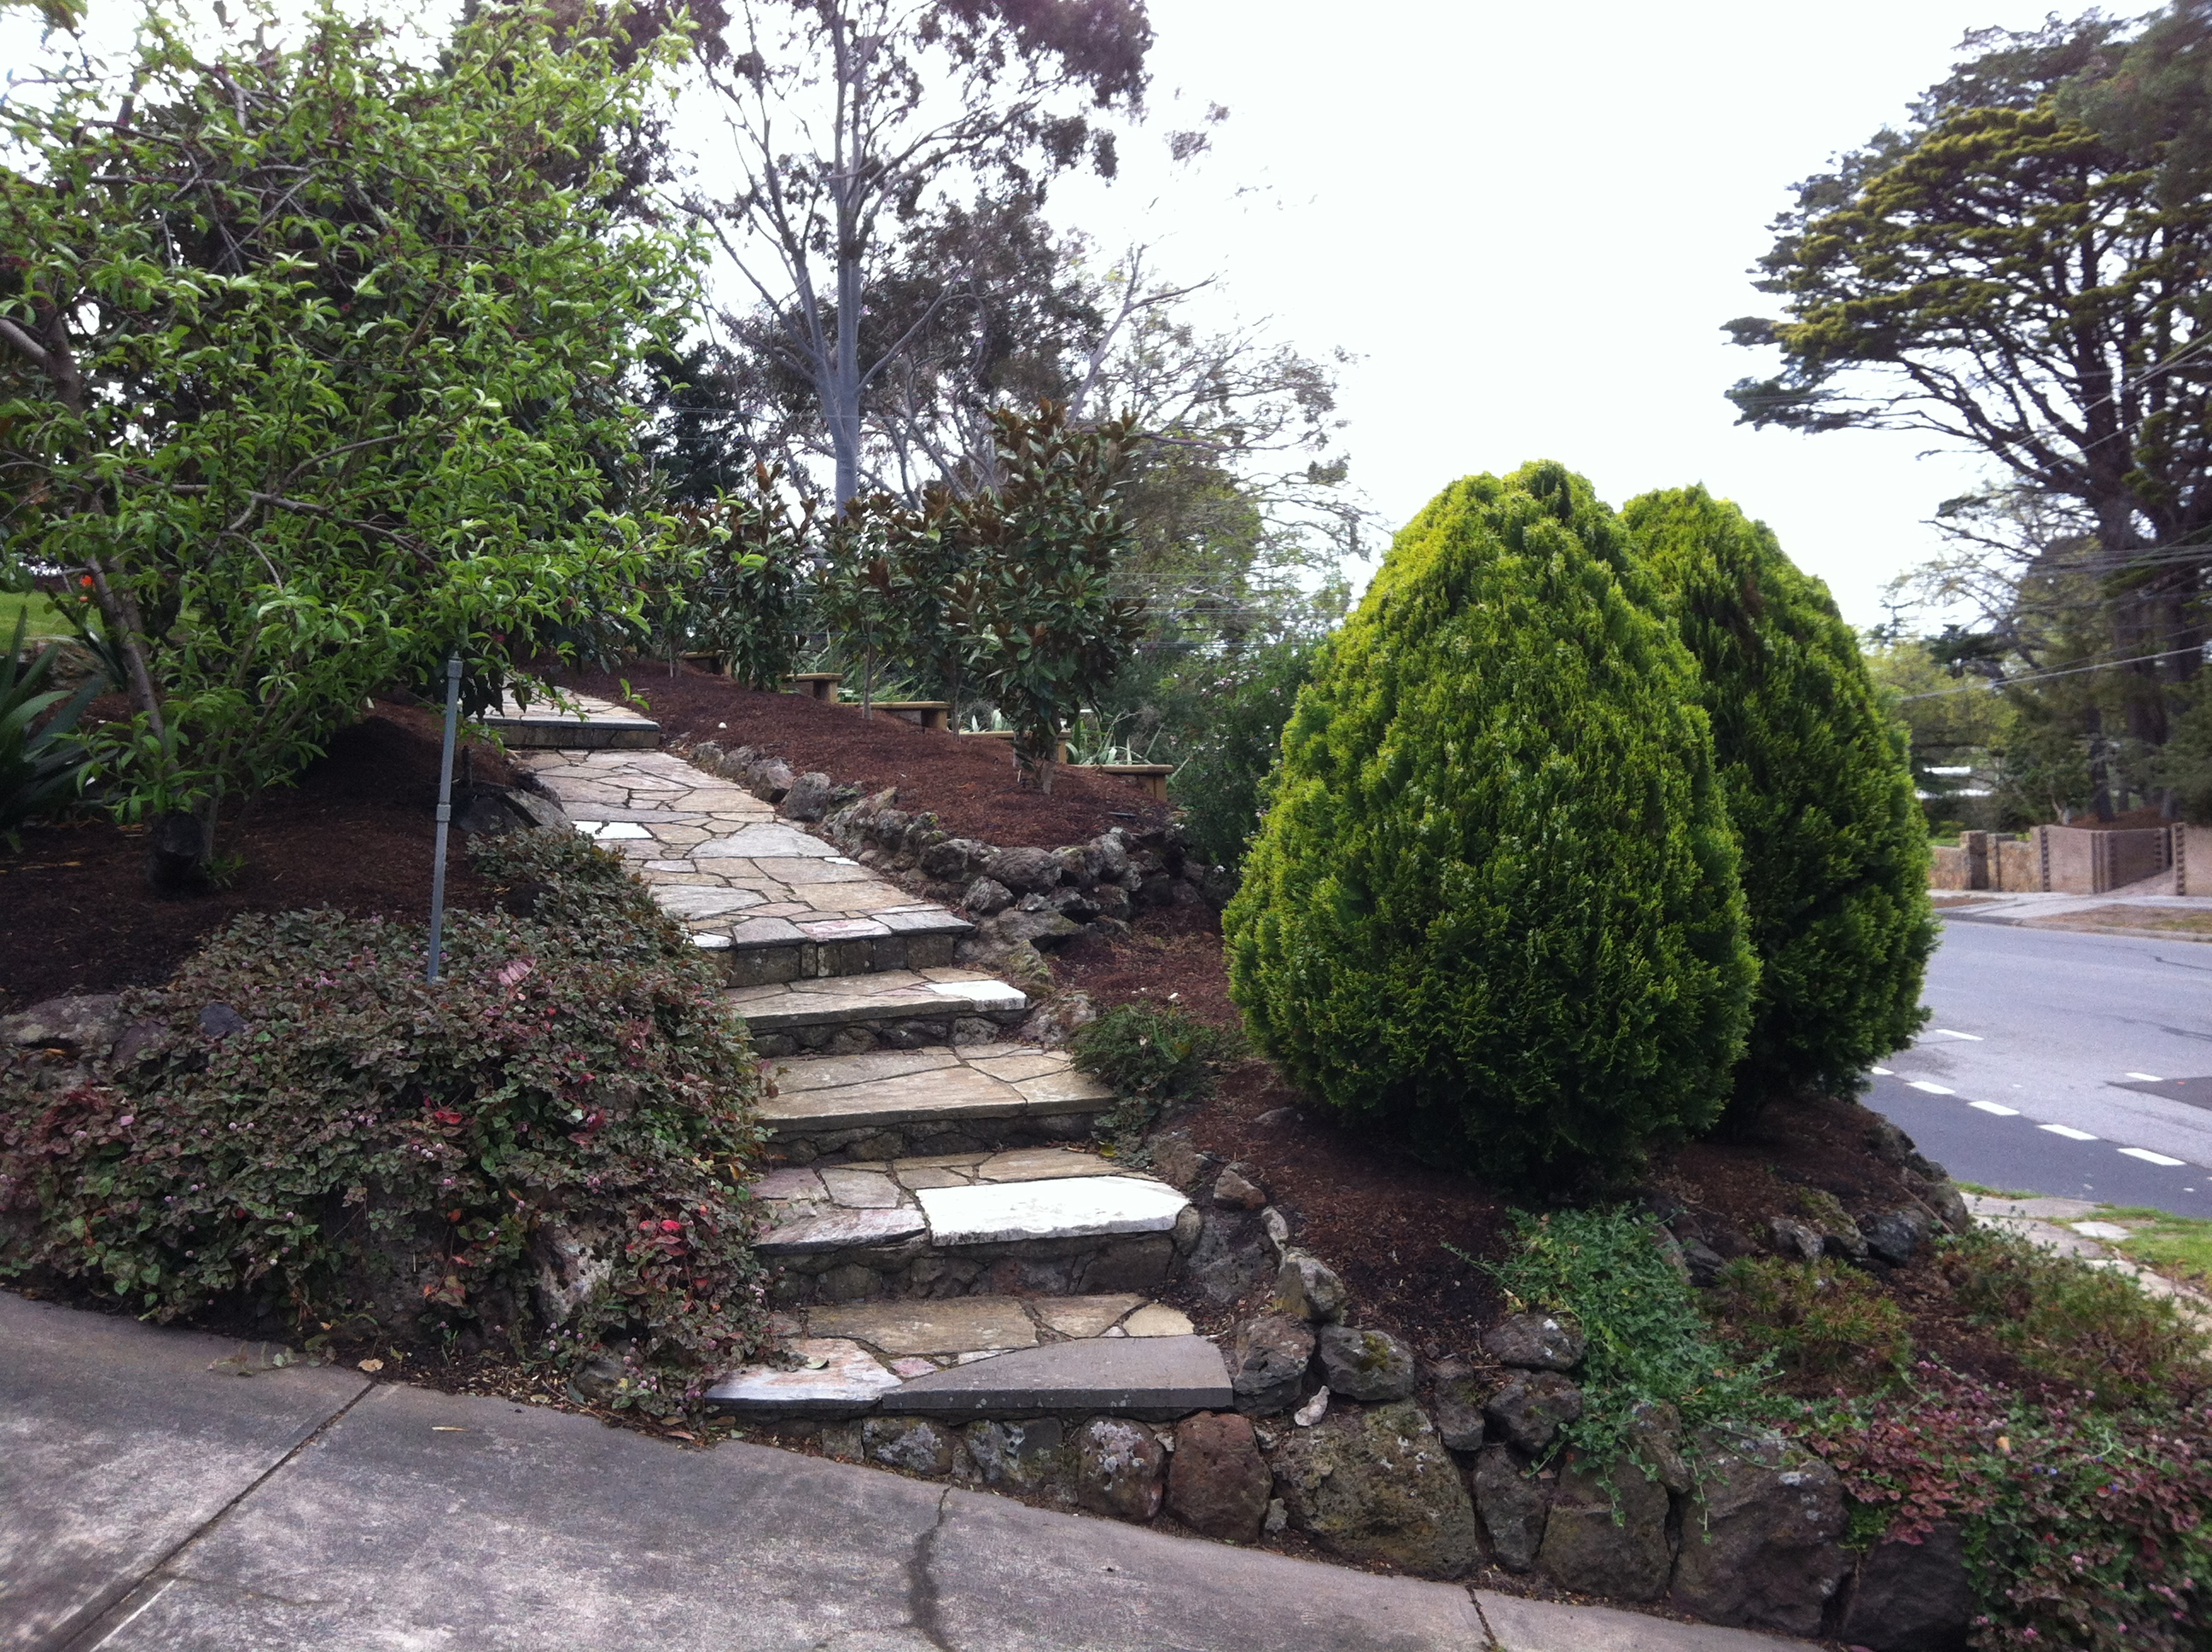 Volcanic Rock Bordering Gardens, Driveway And A Slate Path In A Beaumaris  Garden